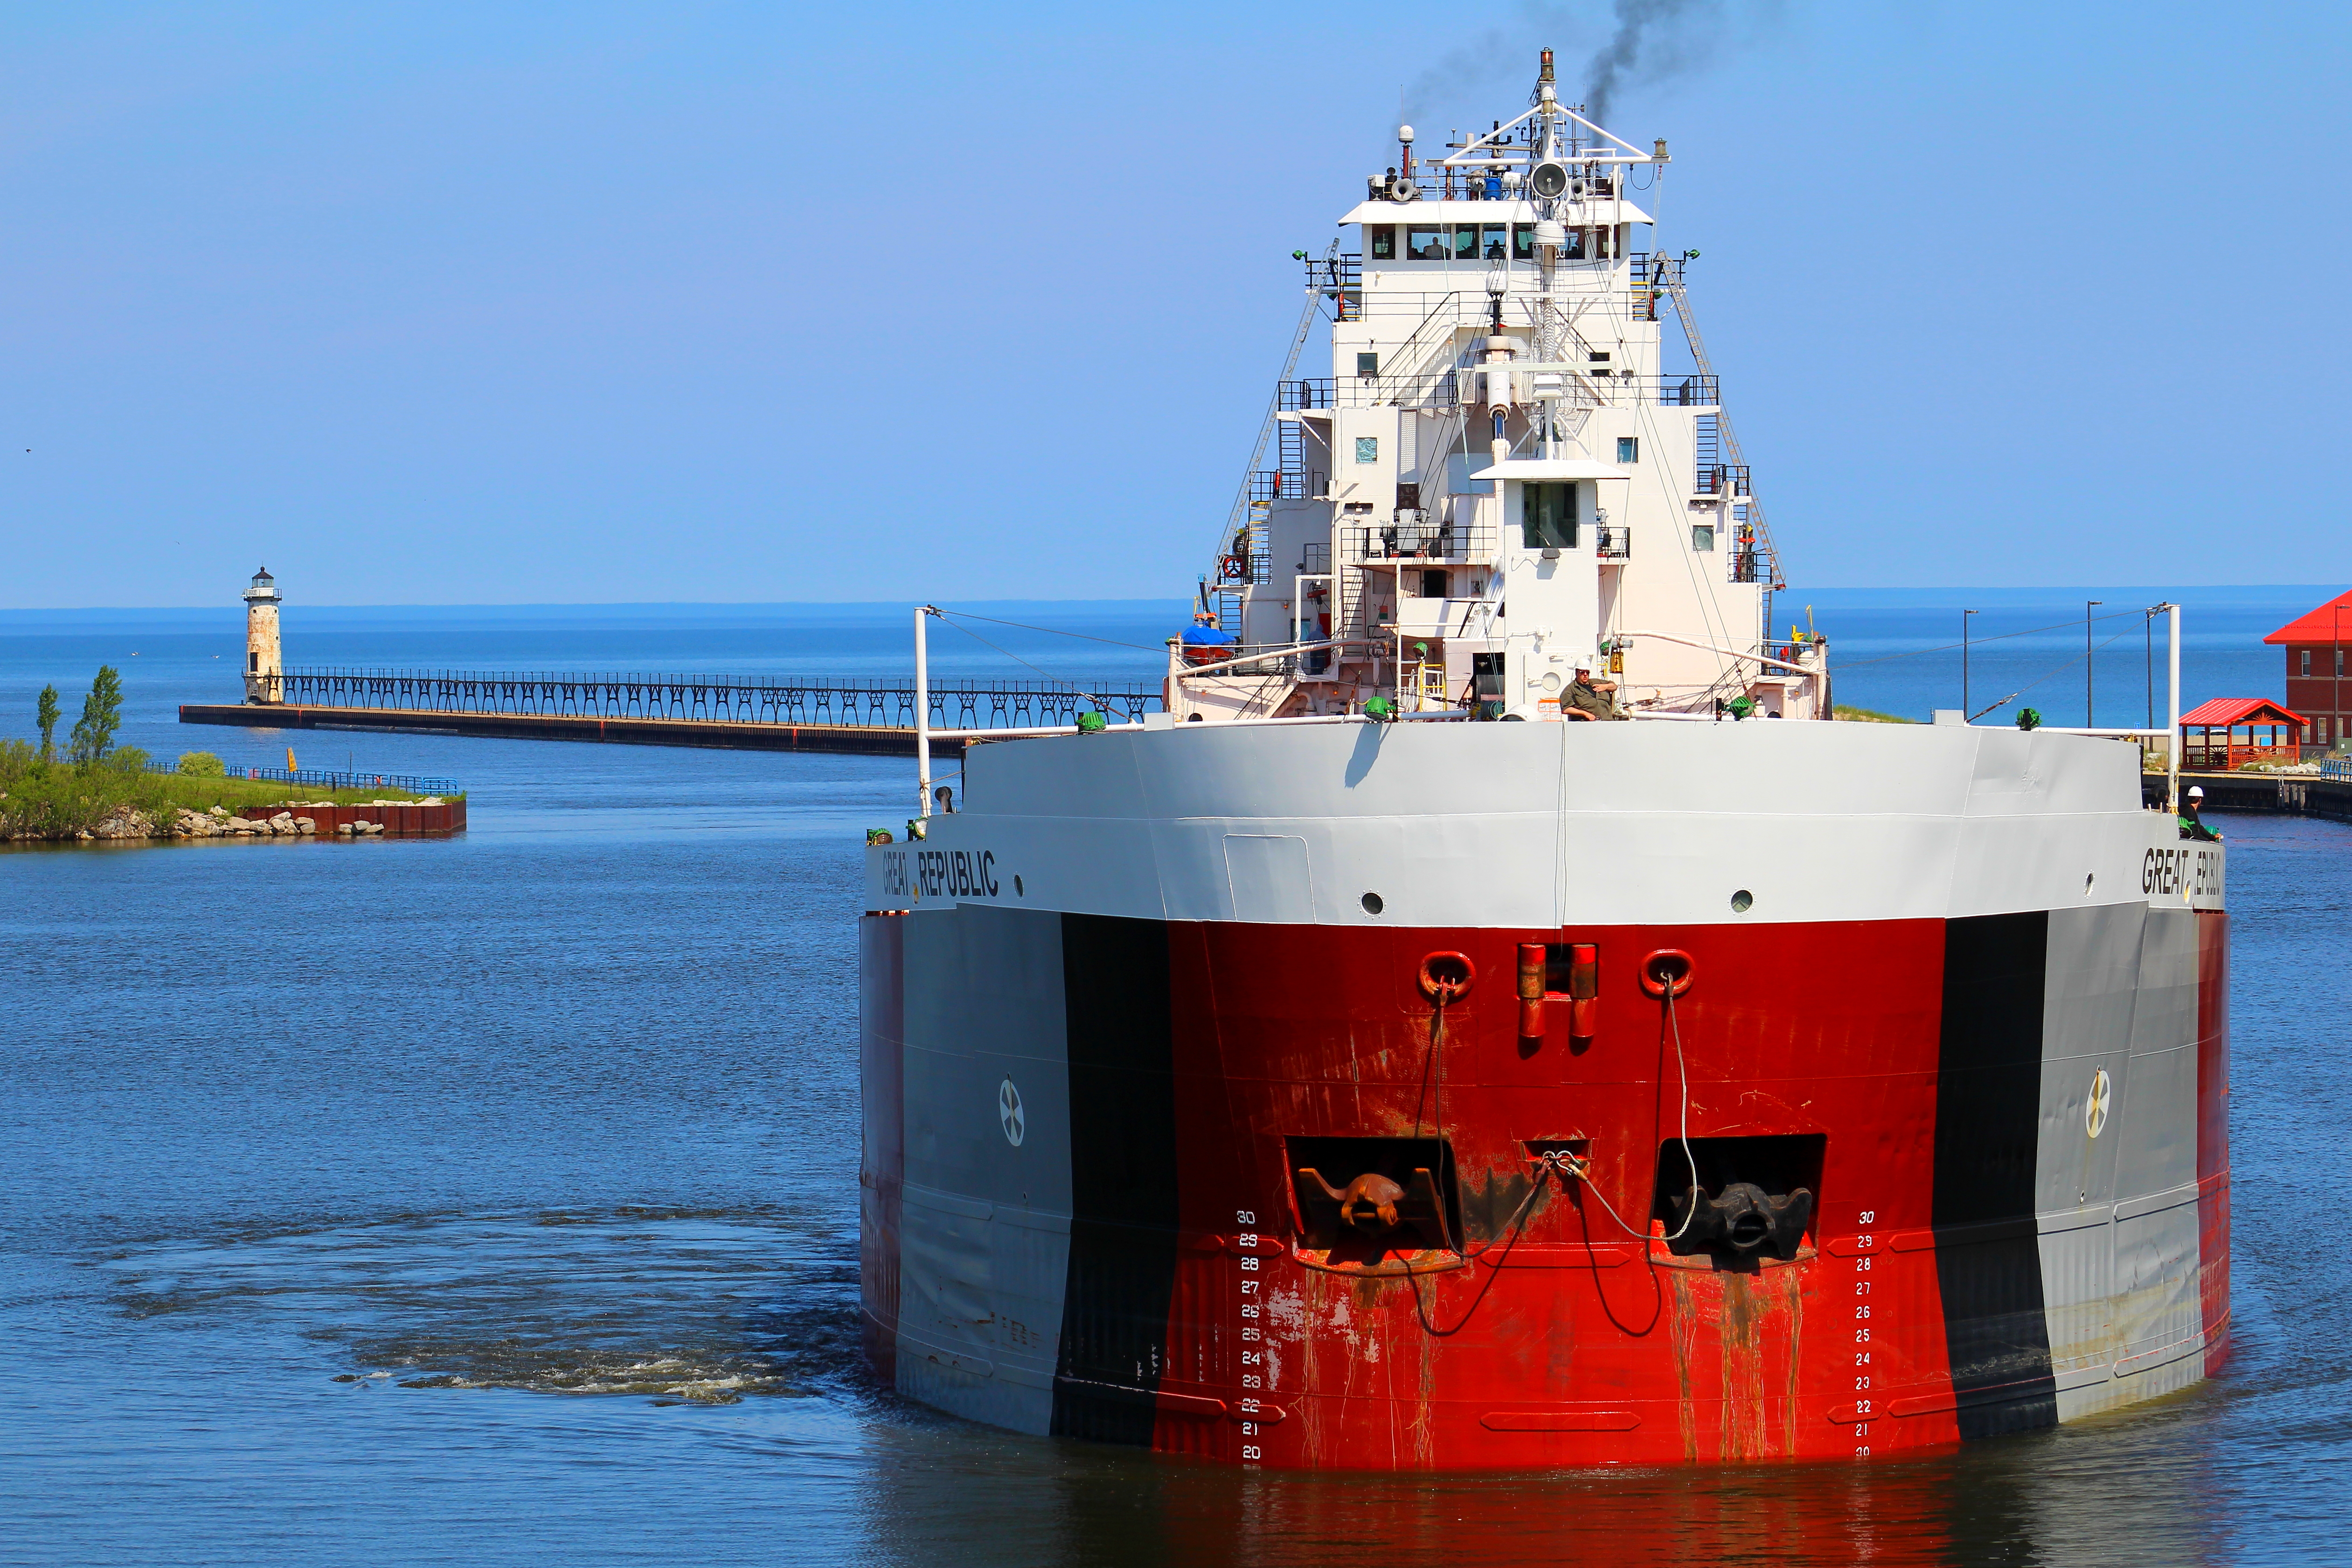 Freighter Great Republic entering the Manistee River Channel with the Fifth Avenue Lighthouse in the background